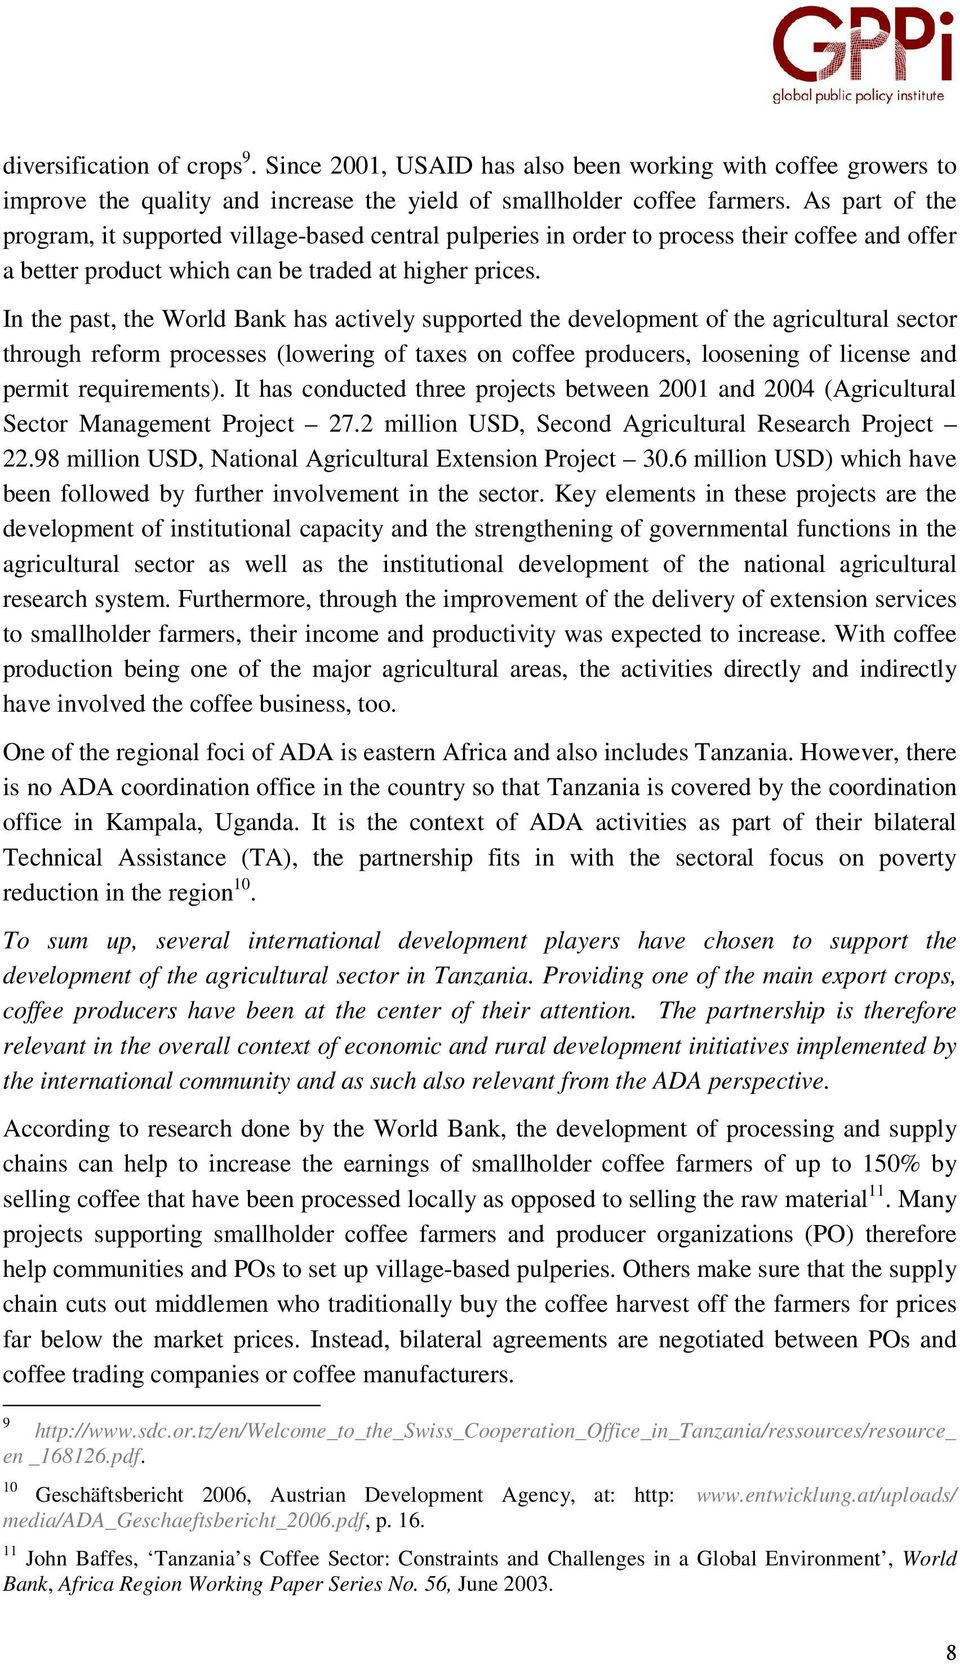 In the past, the World Bank has actively supported the development of the agricultural sector through reform processes (lowering of taxes on coffee producers, loosening of license and permit